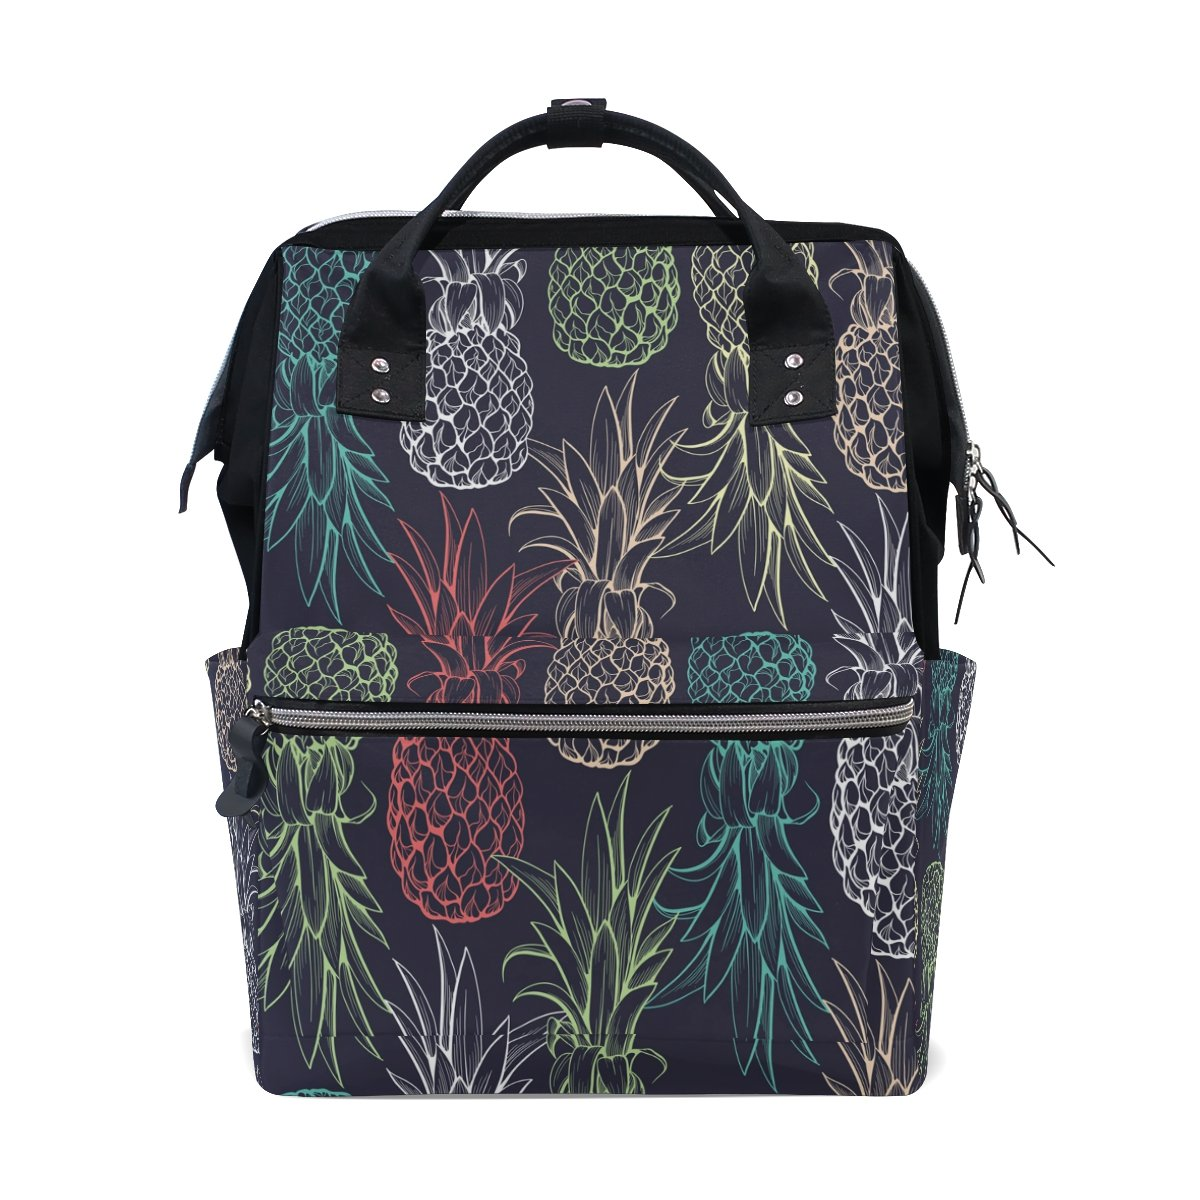 WOZO Fashion Pineapple Multi-function Diaper Bags Backpack Travel Bag